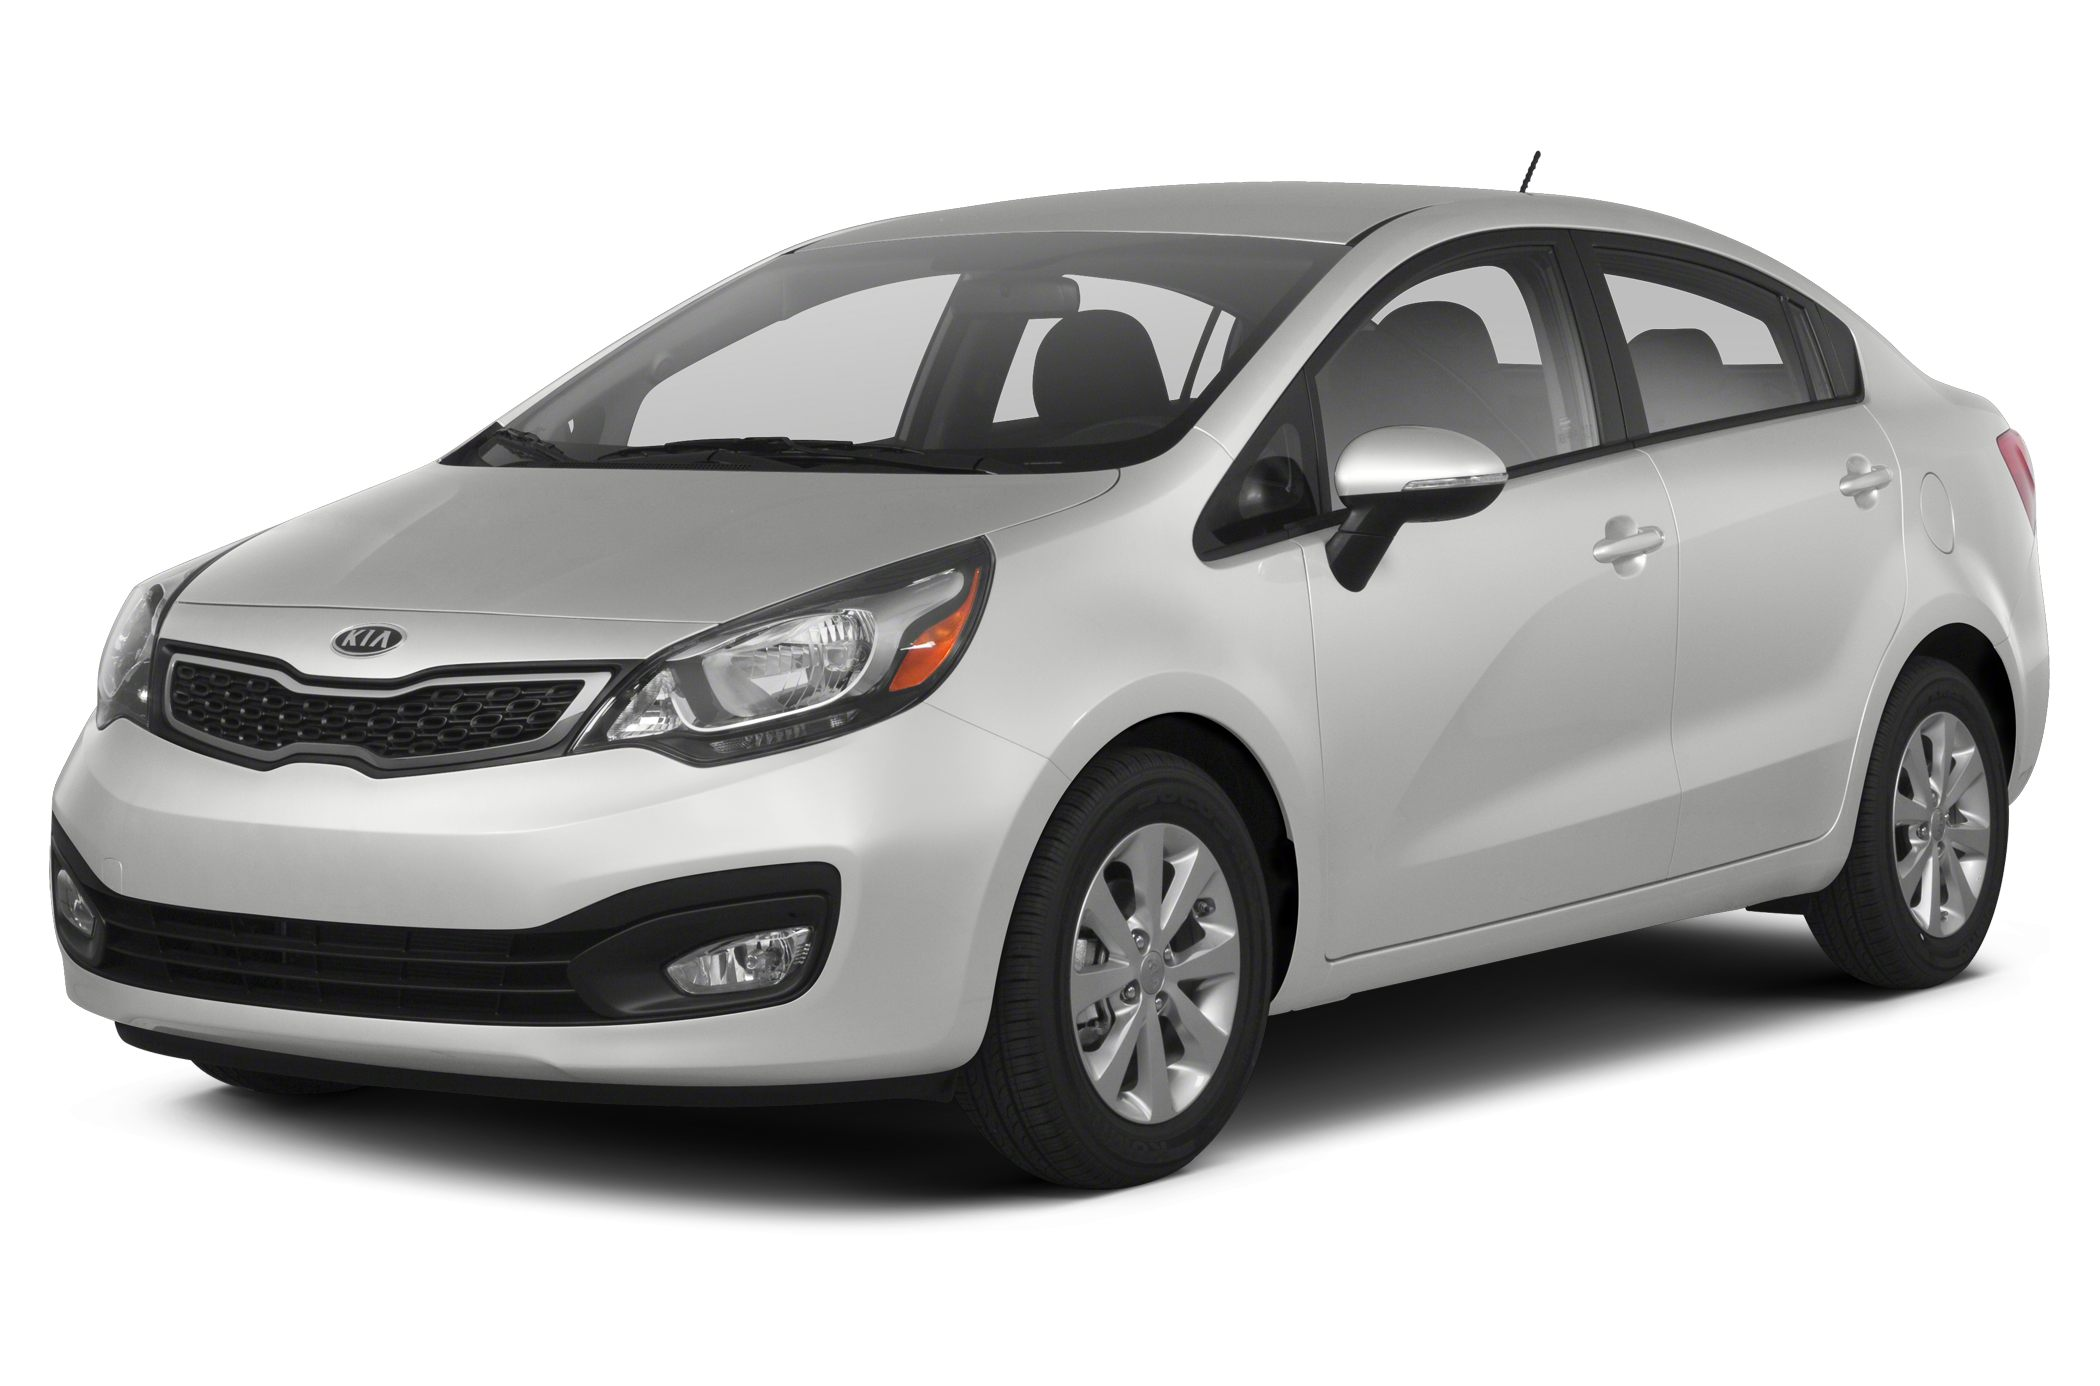 2013 Kia Rio EX Sedan for sale in Crystal River for $18,660 with 0 miles.